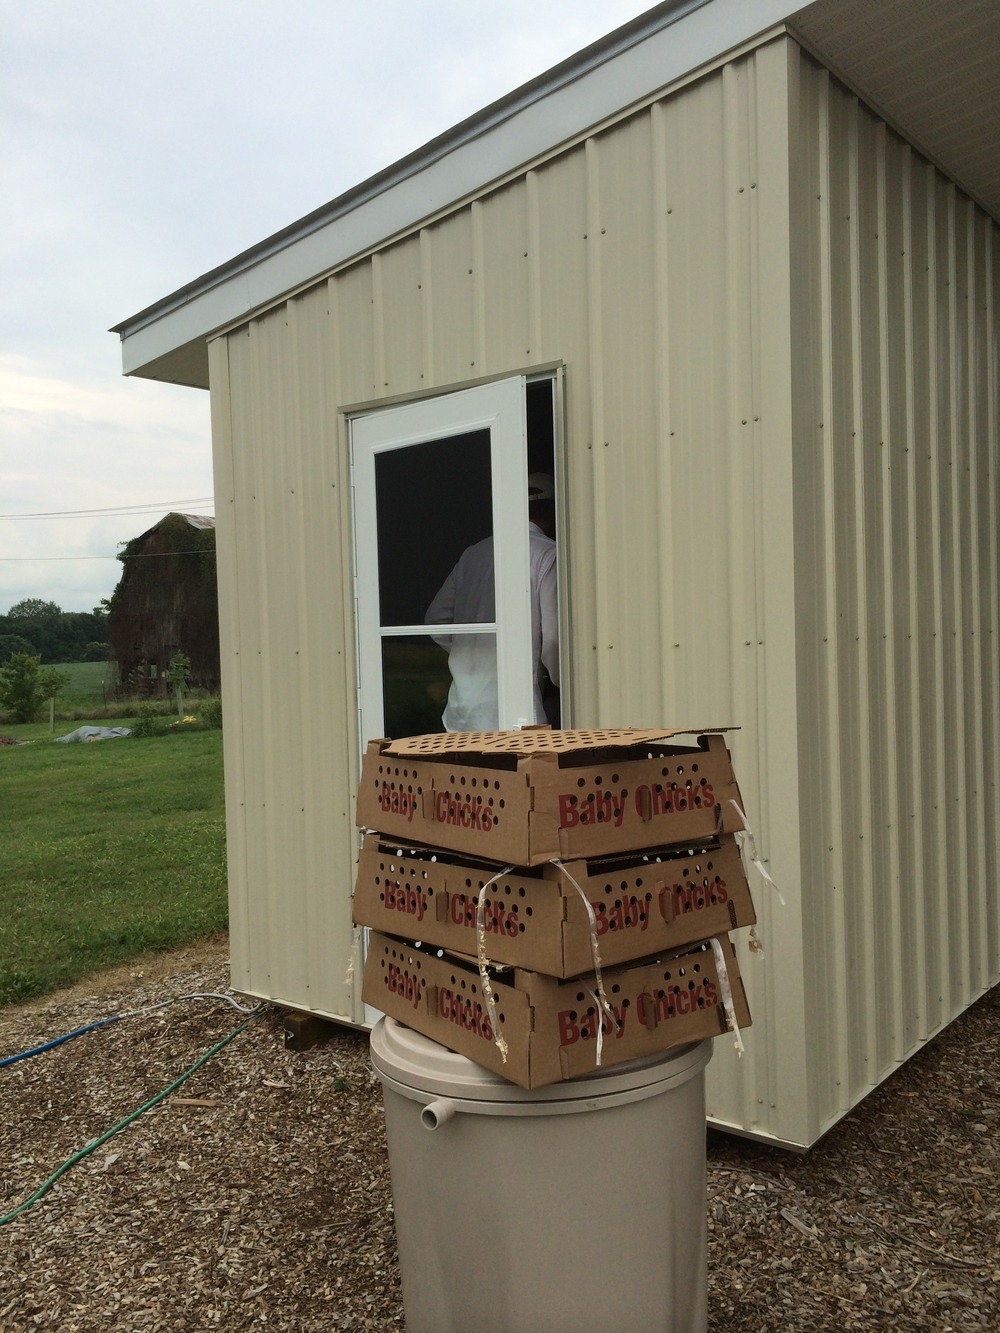 The day-old chicks arrived by mail, in three boxes, and were put into our newly-constructed brooder house.